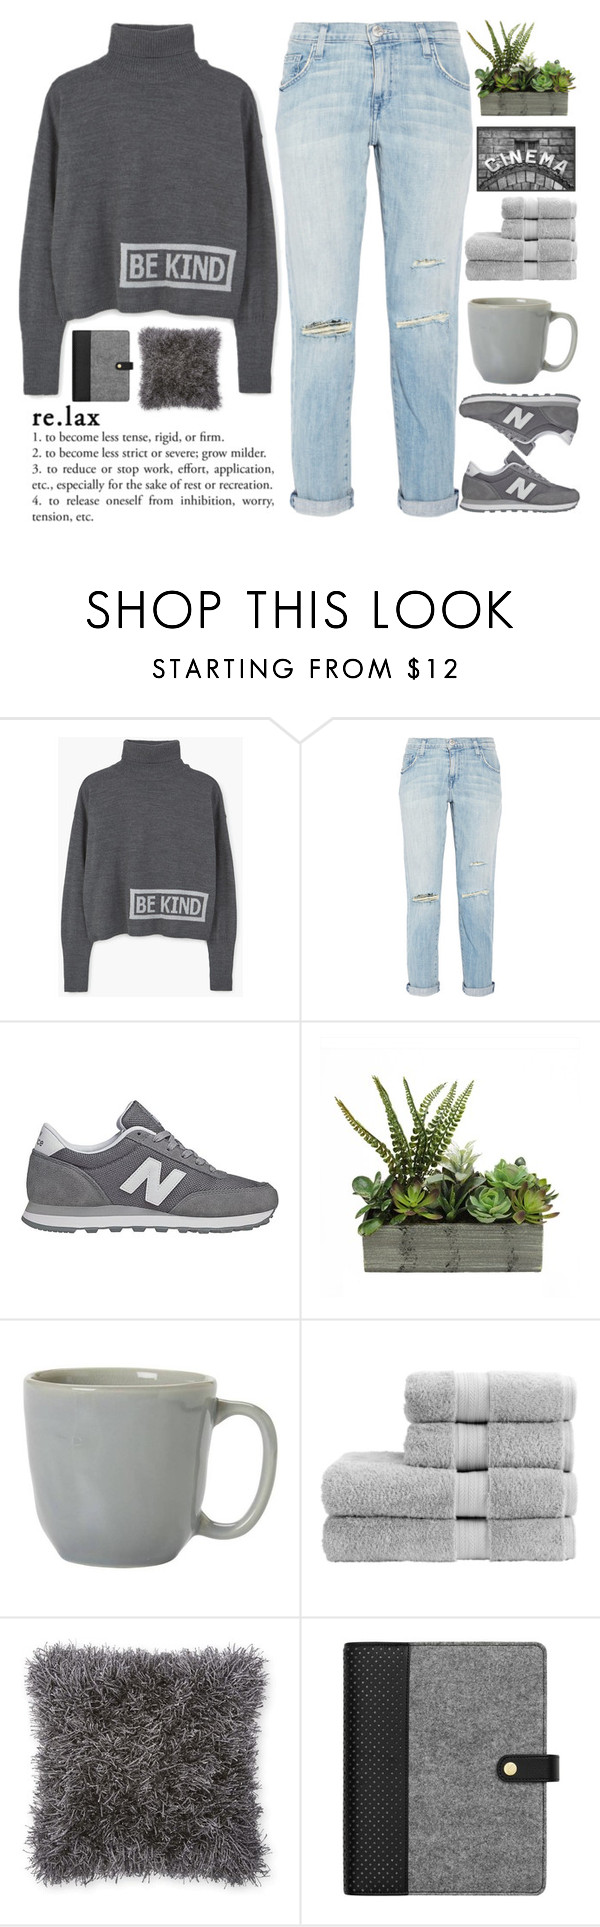 """Curiosity is not a vice. Much worse when the person feels indifference"" by holly-k15 ❤ liked on Polyvore featuring MANGO, Current/Elliott, New Balance, Juliska, Christy and Pottery Barn"